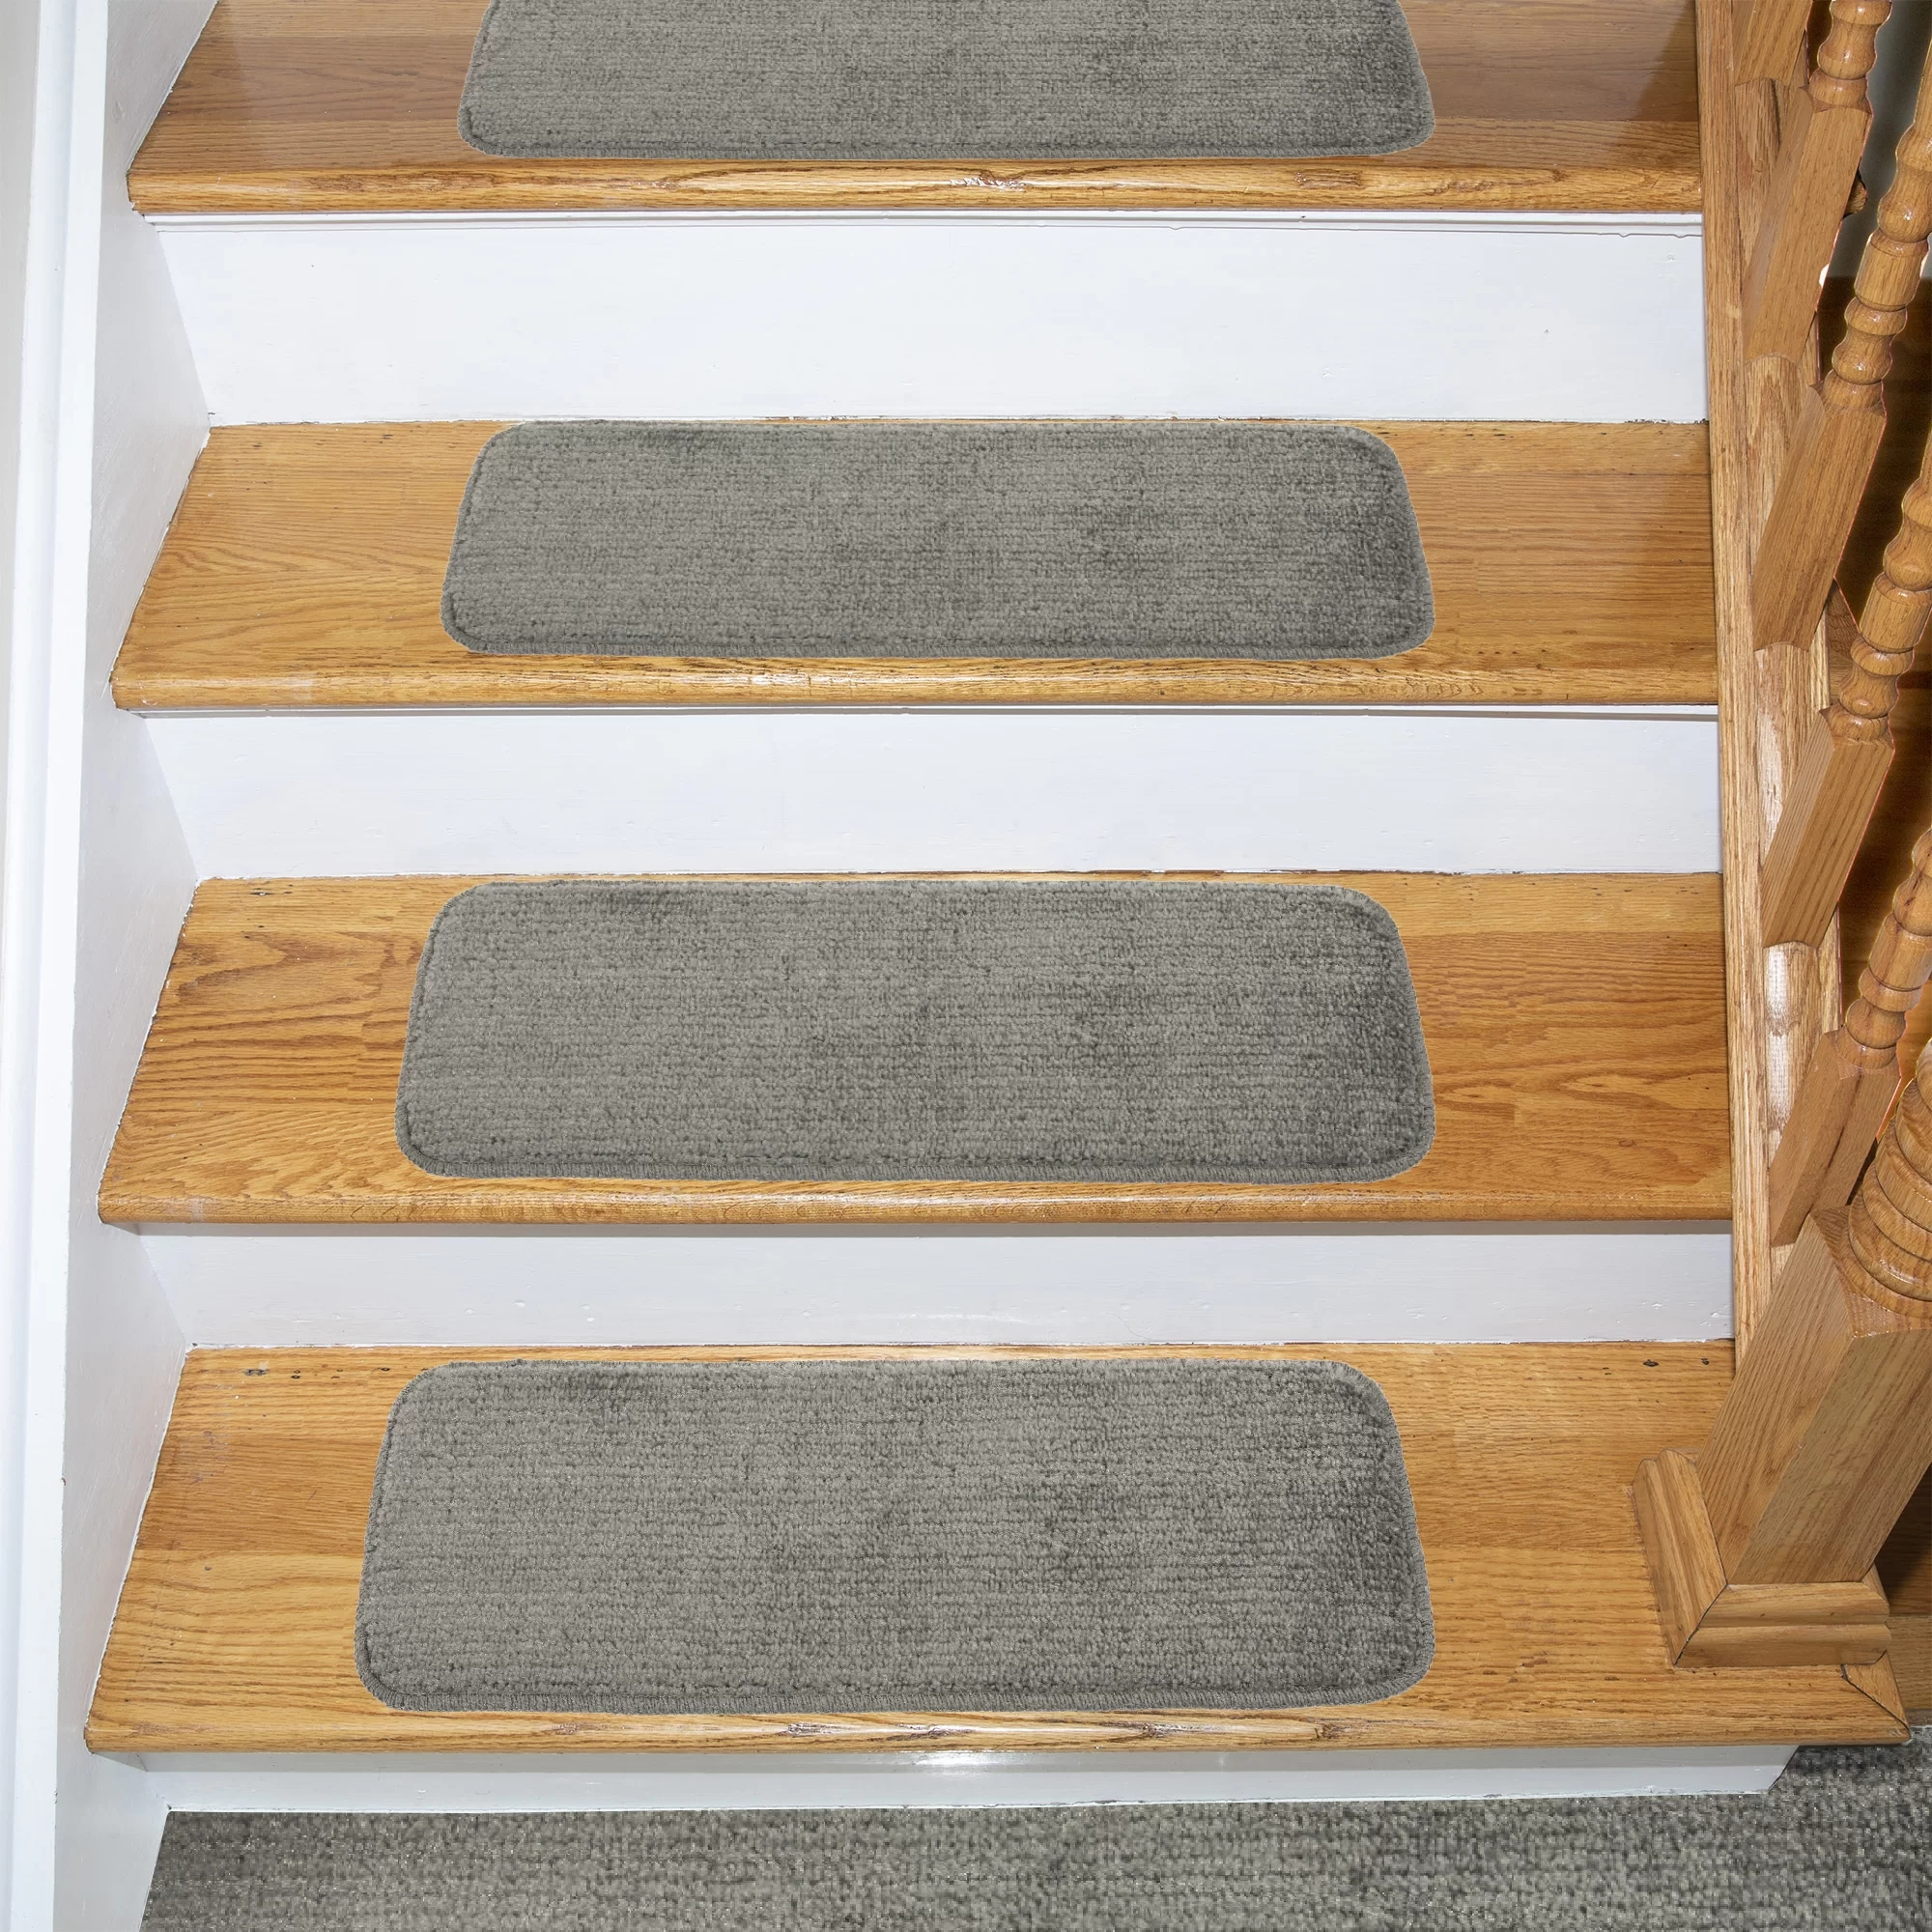 Tucker Murphy™ Pet Beattie Soft Solid Sh*G Carpet Stair Tread | Carpet Treads For Wooden Stairs | Commercial Rubber | Rectangular Cord Treads | Carpet Wrapped | Self Adhesive | Different Style Stair